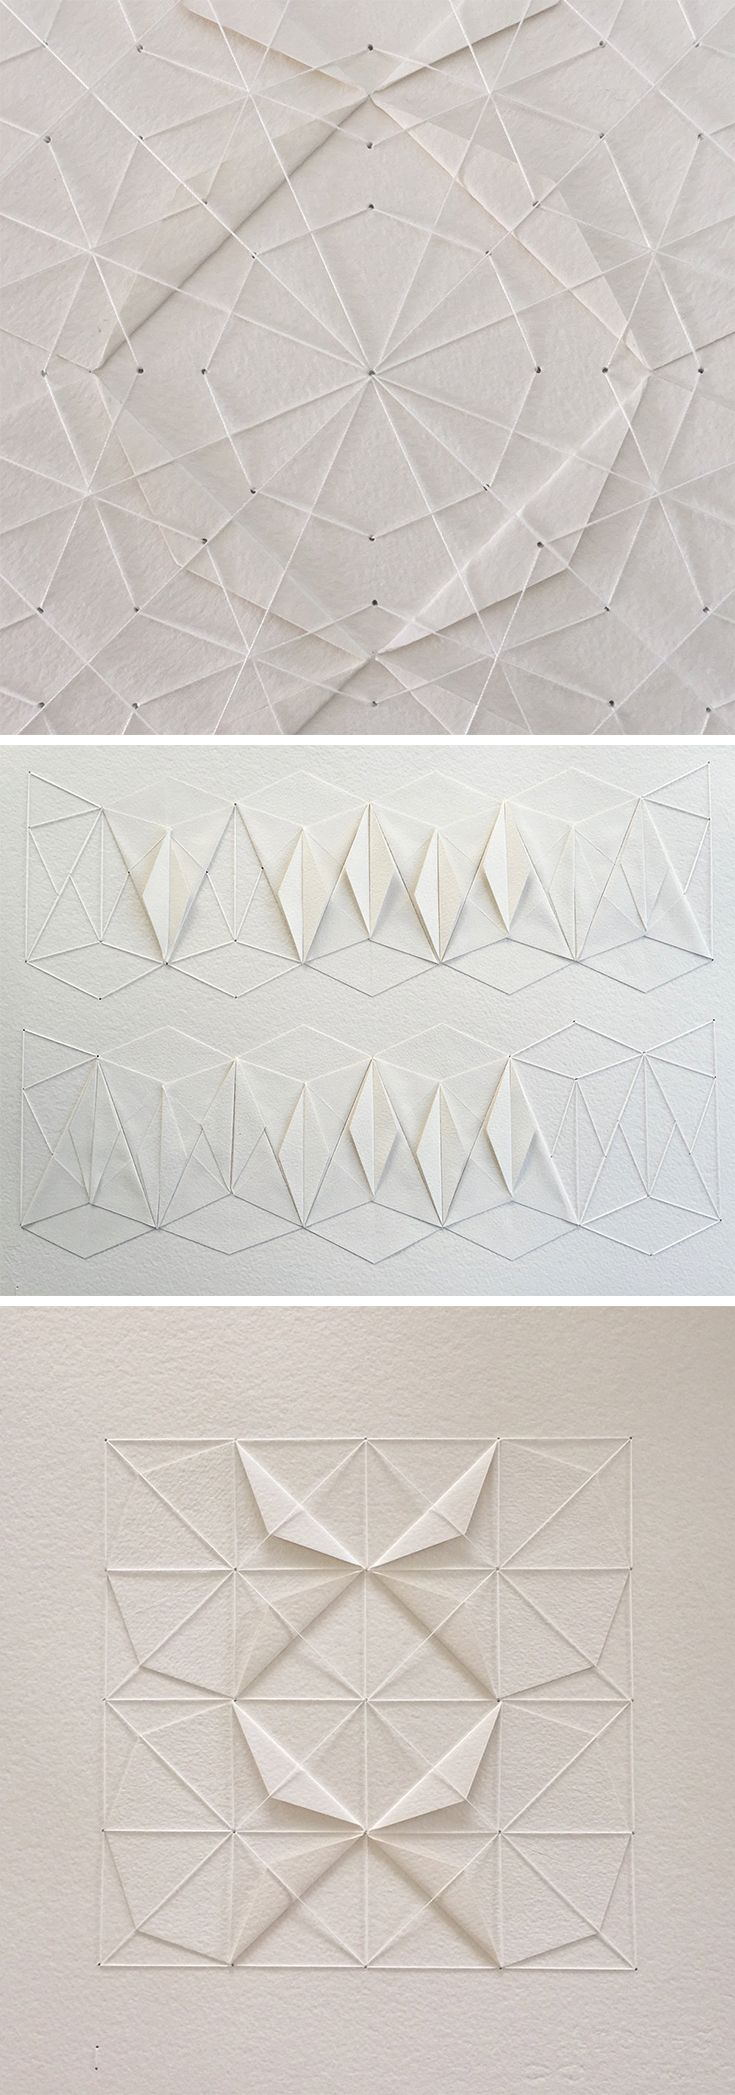 Click for more pics! | Delicate Stitched Origami Patterns by Liz Sofield #origami #paperart #patterns